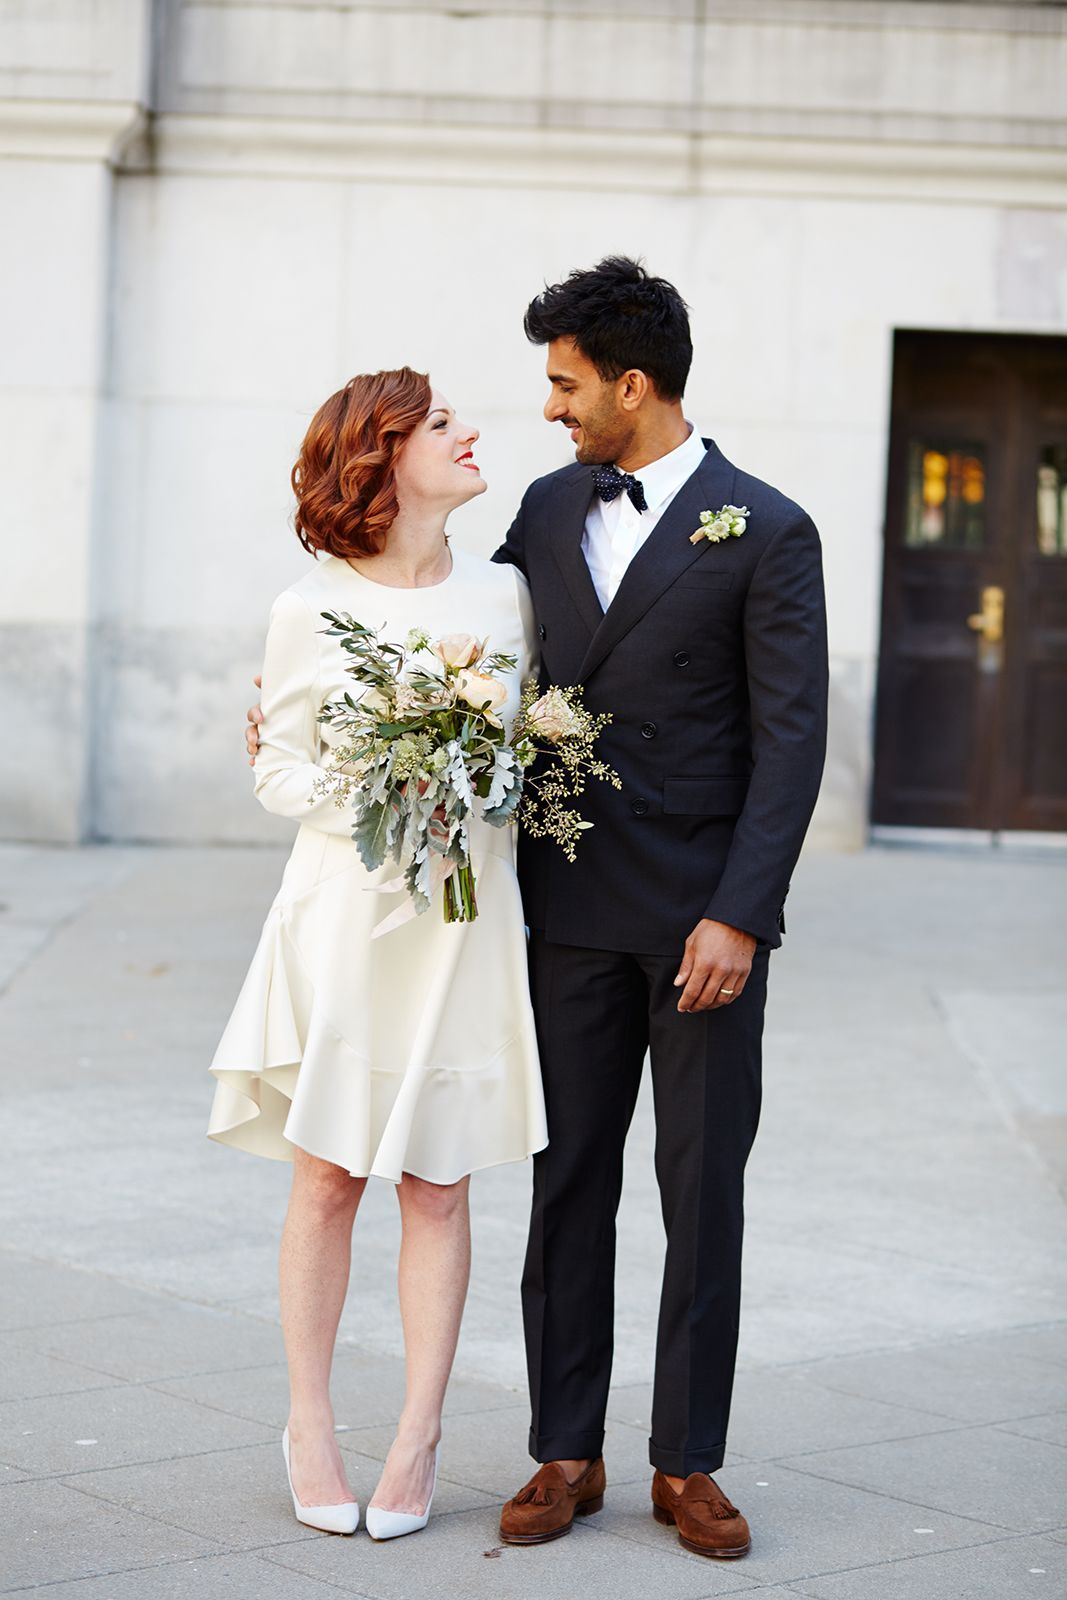 These gorgeous city hall weddings are goals city hall weddings trying to find the perfect city hall wedding dress for your big day get inspiration from these real brides unique and stylish city hall bridal outfits junglespirit Images